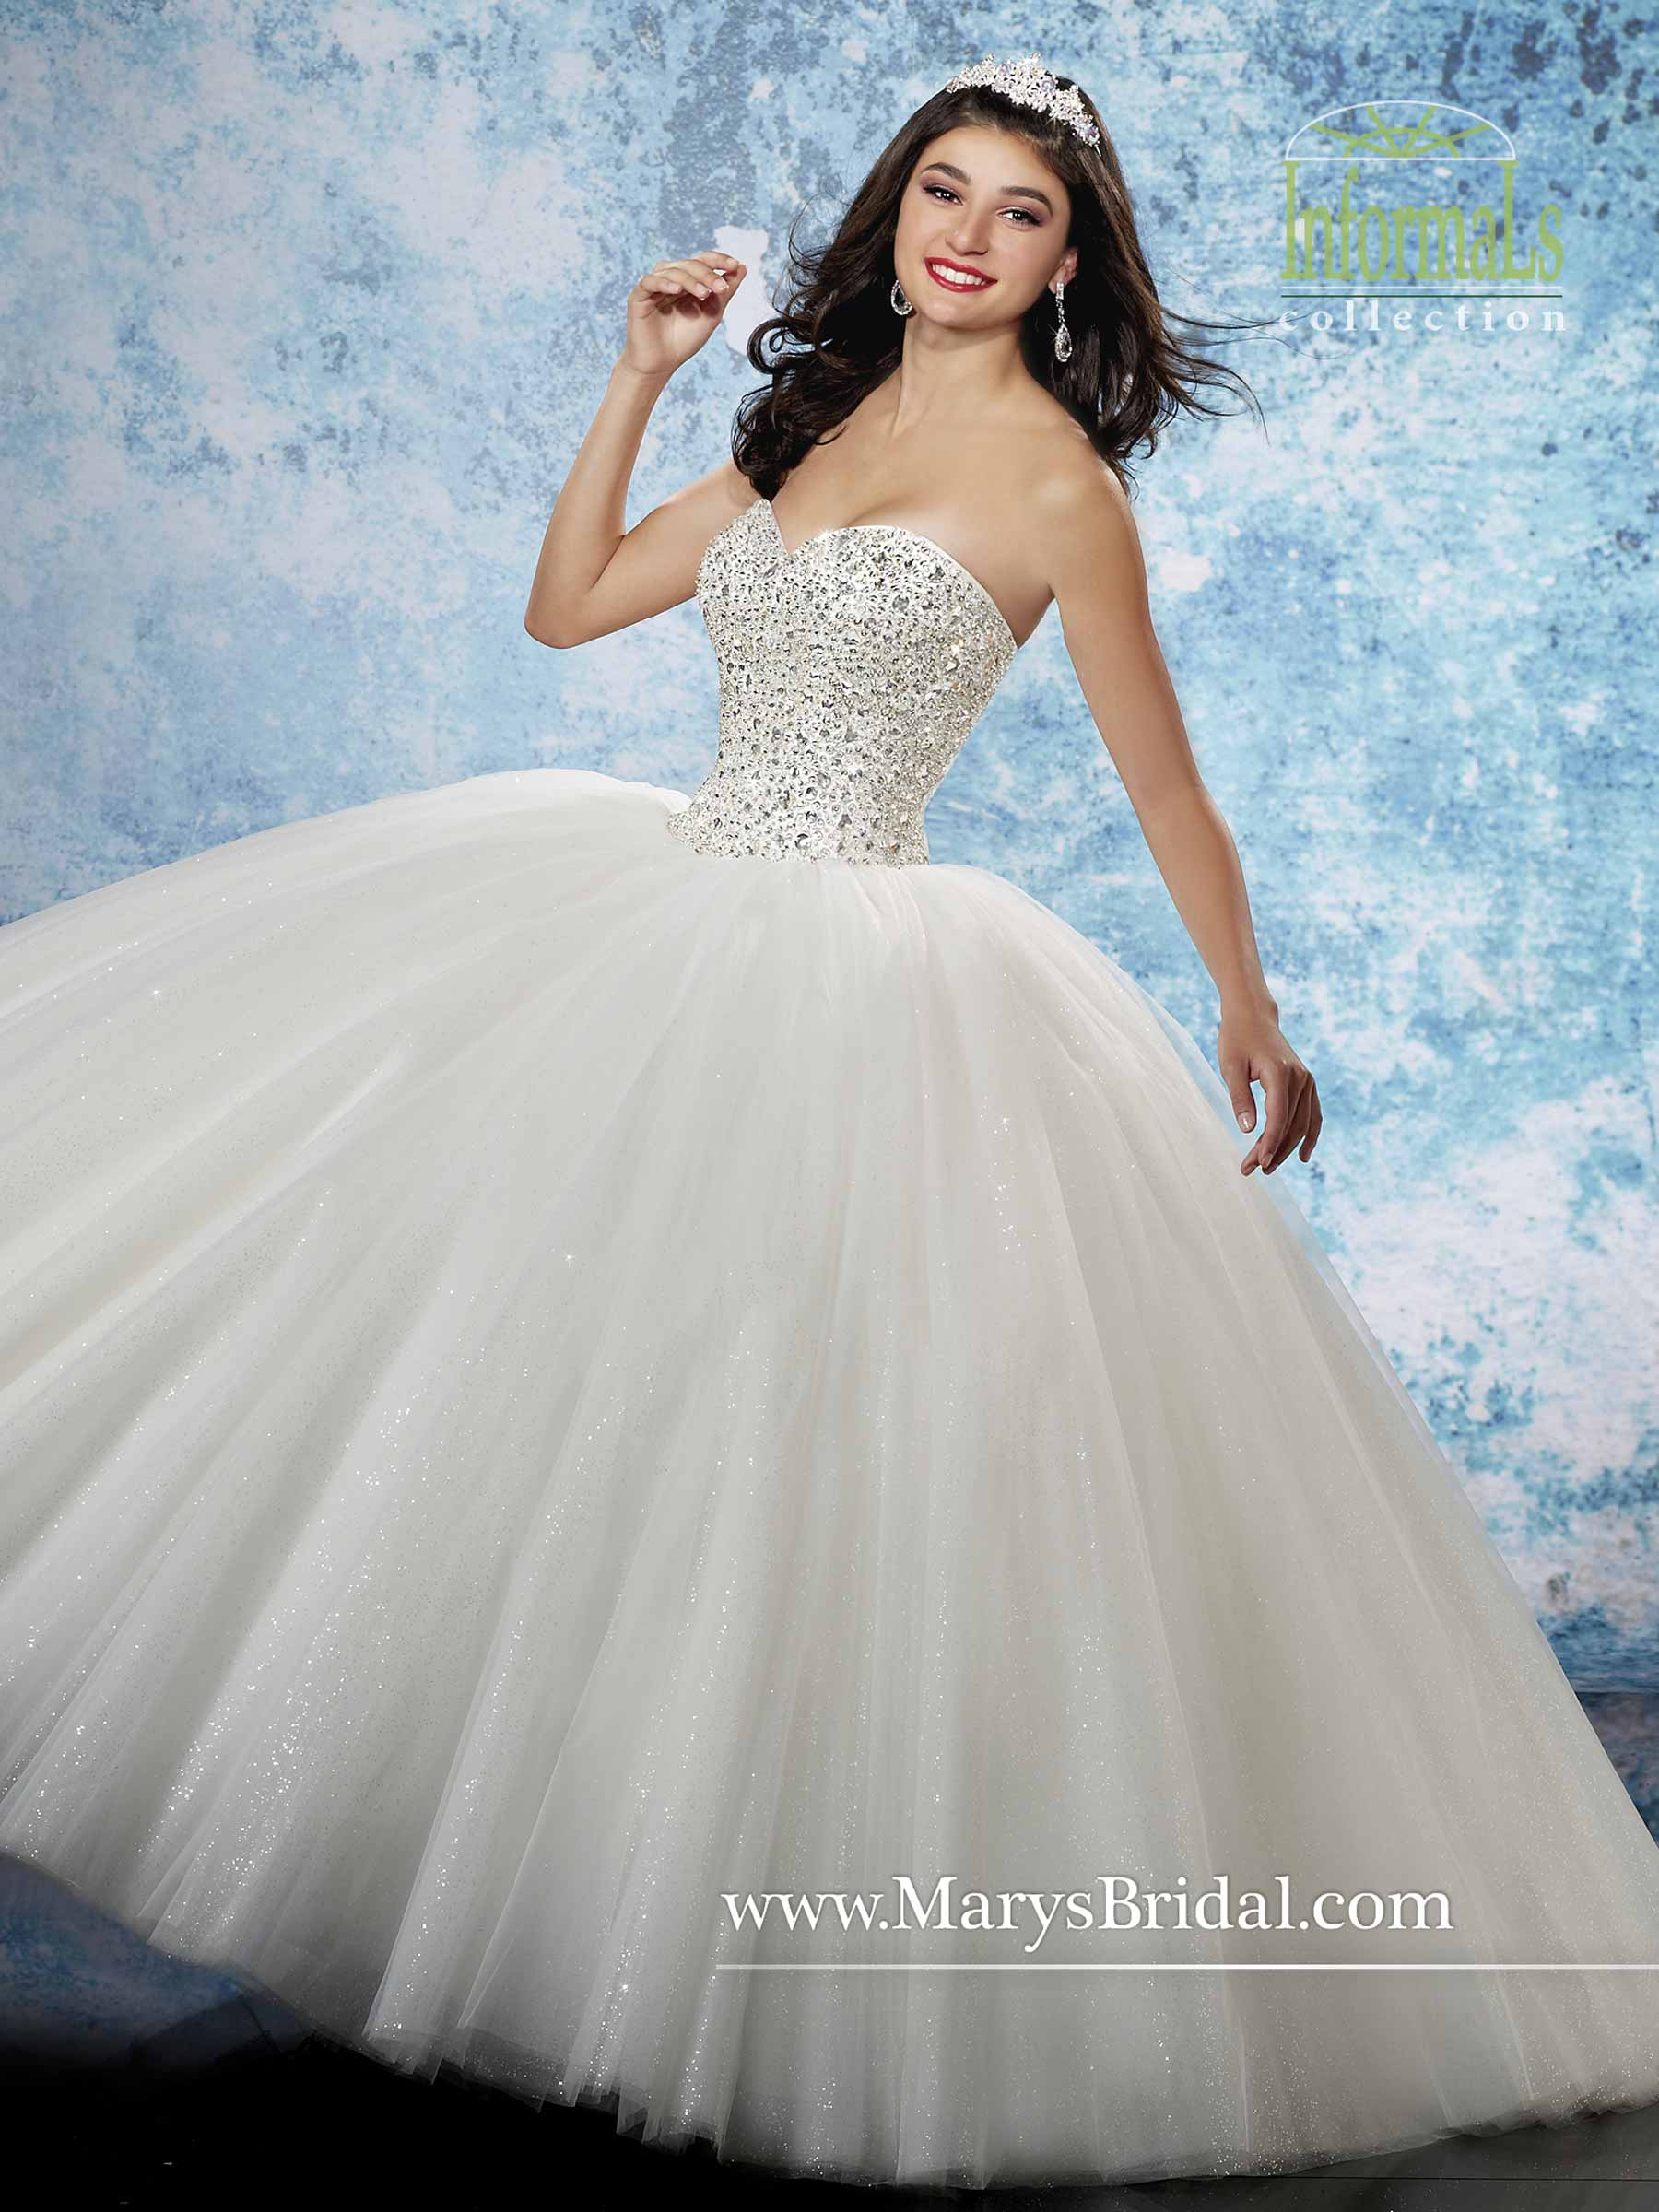 Bridal Ball Gowns Style 2b800 In Light Blue Ivory Or White Color